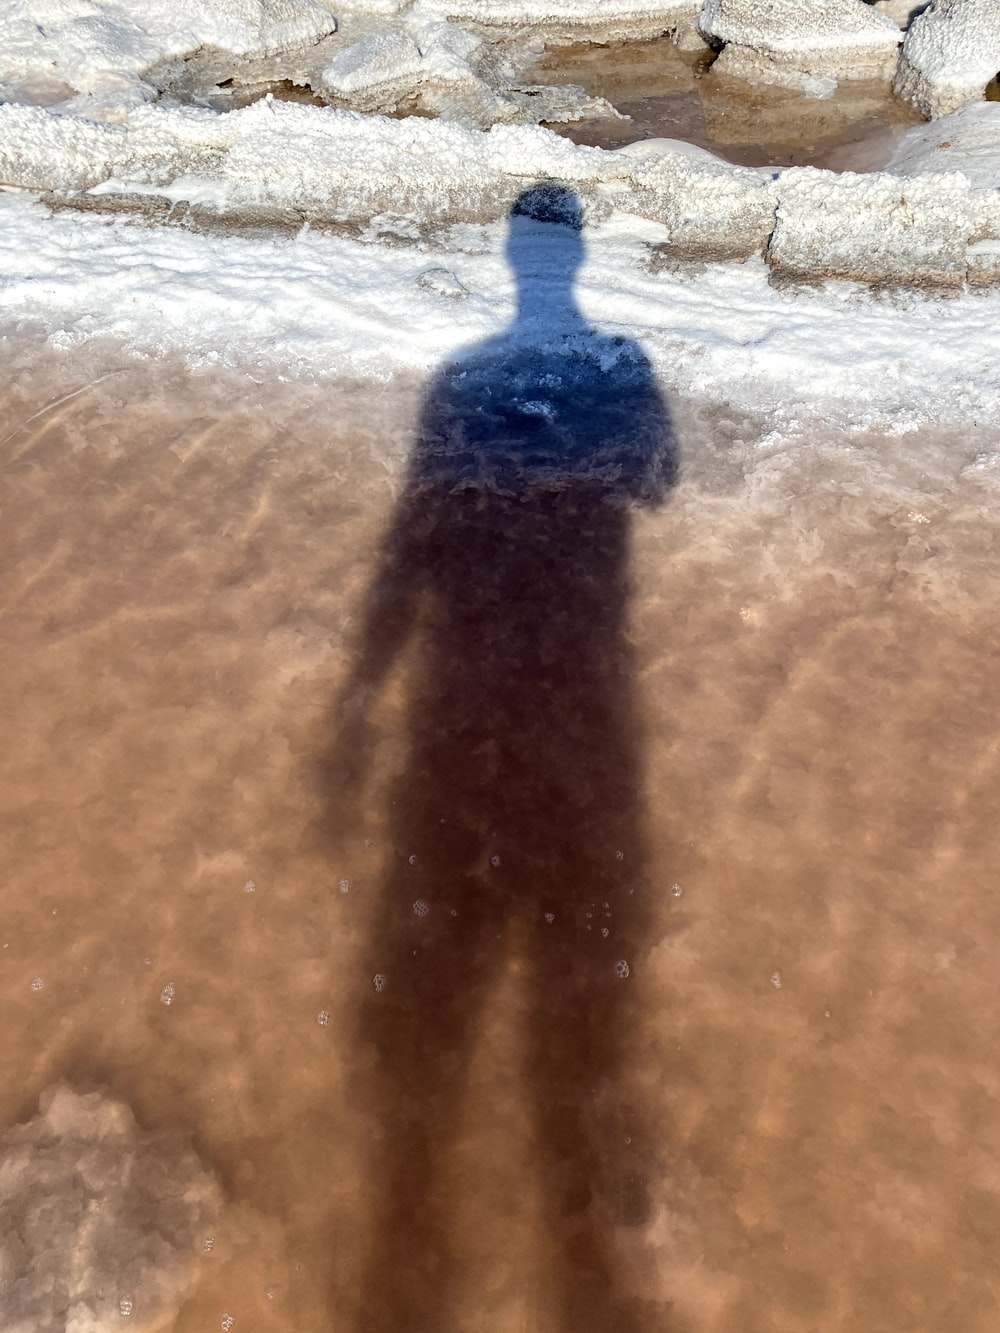 person in blue shirt walking on brown sand during daytime